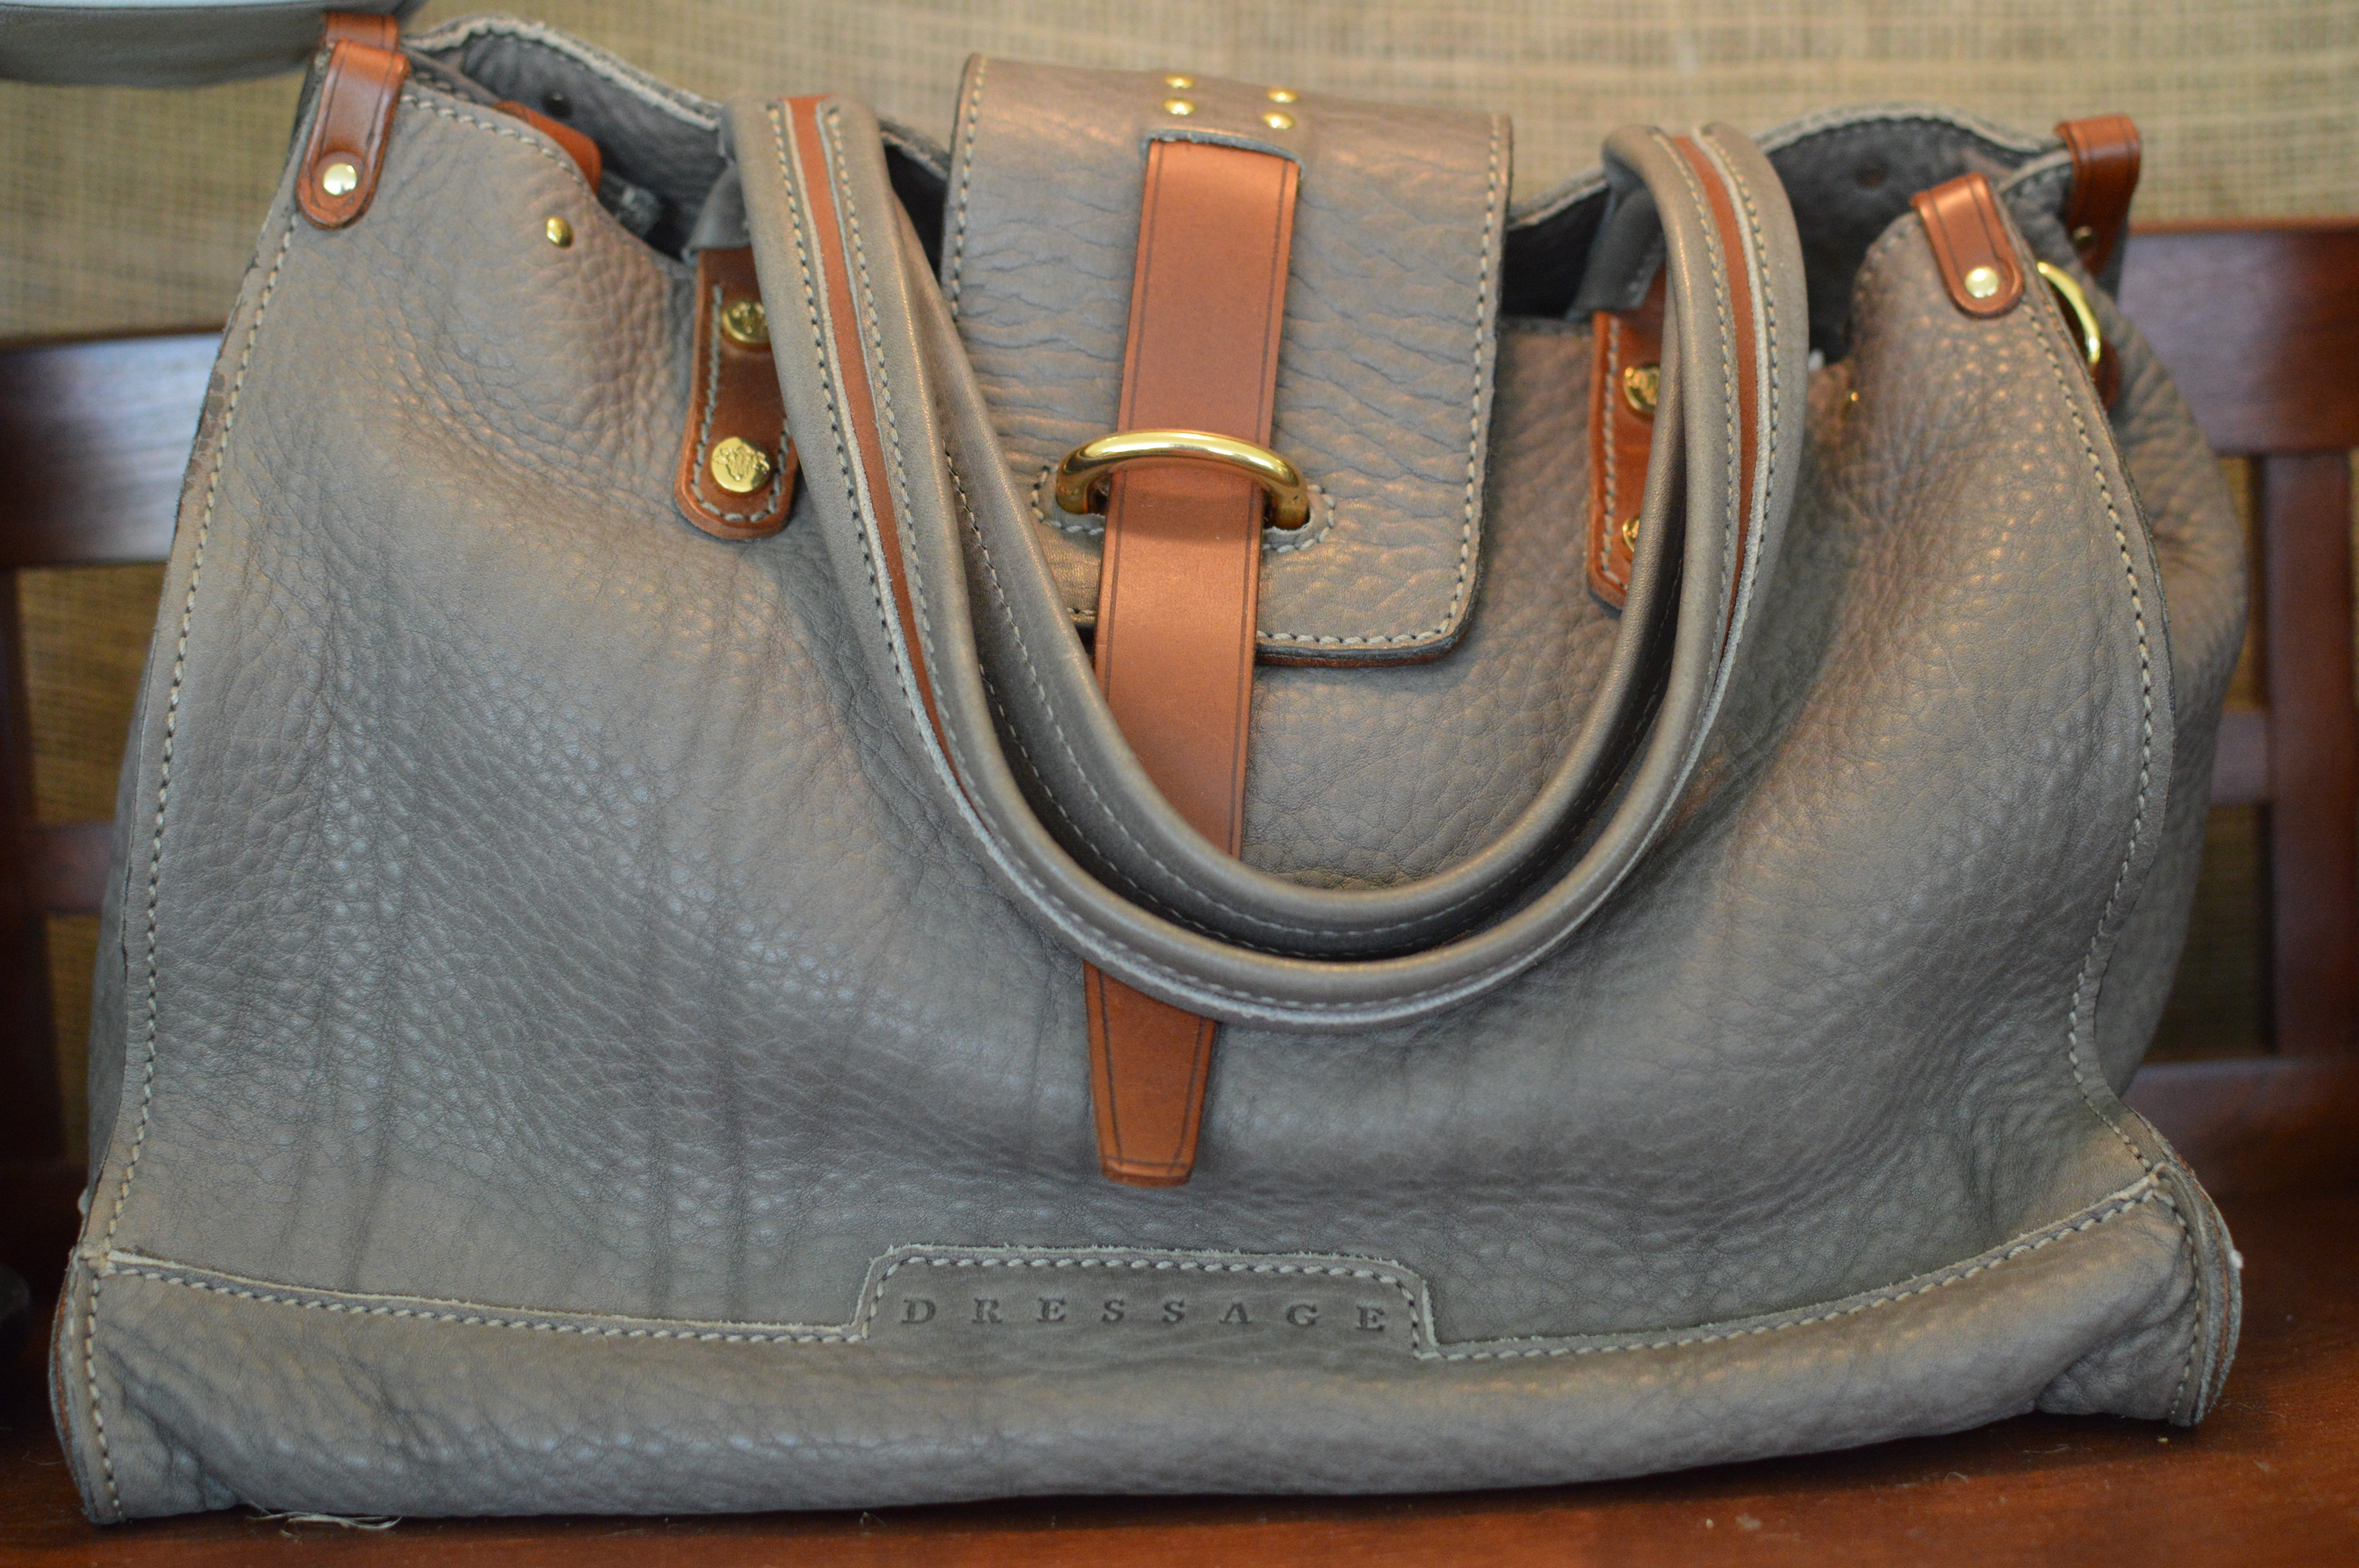 Dressage Collection - Large Trotter Tote - my new favorite bag! http://www.dressagecollection.com/collections/bridle-collection